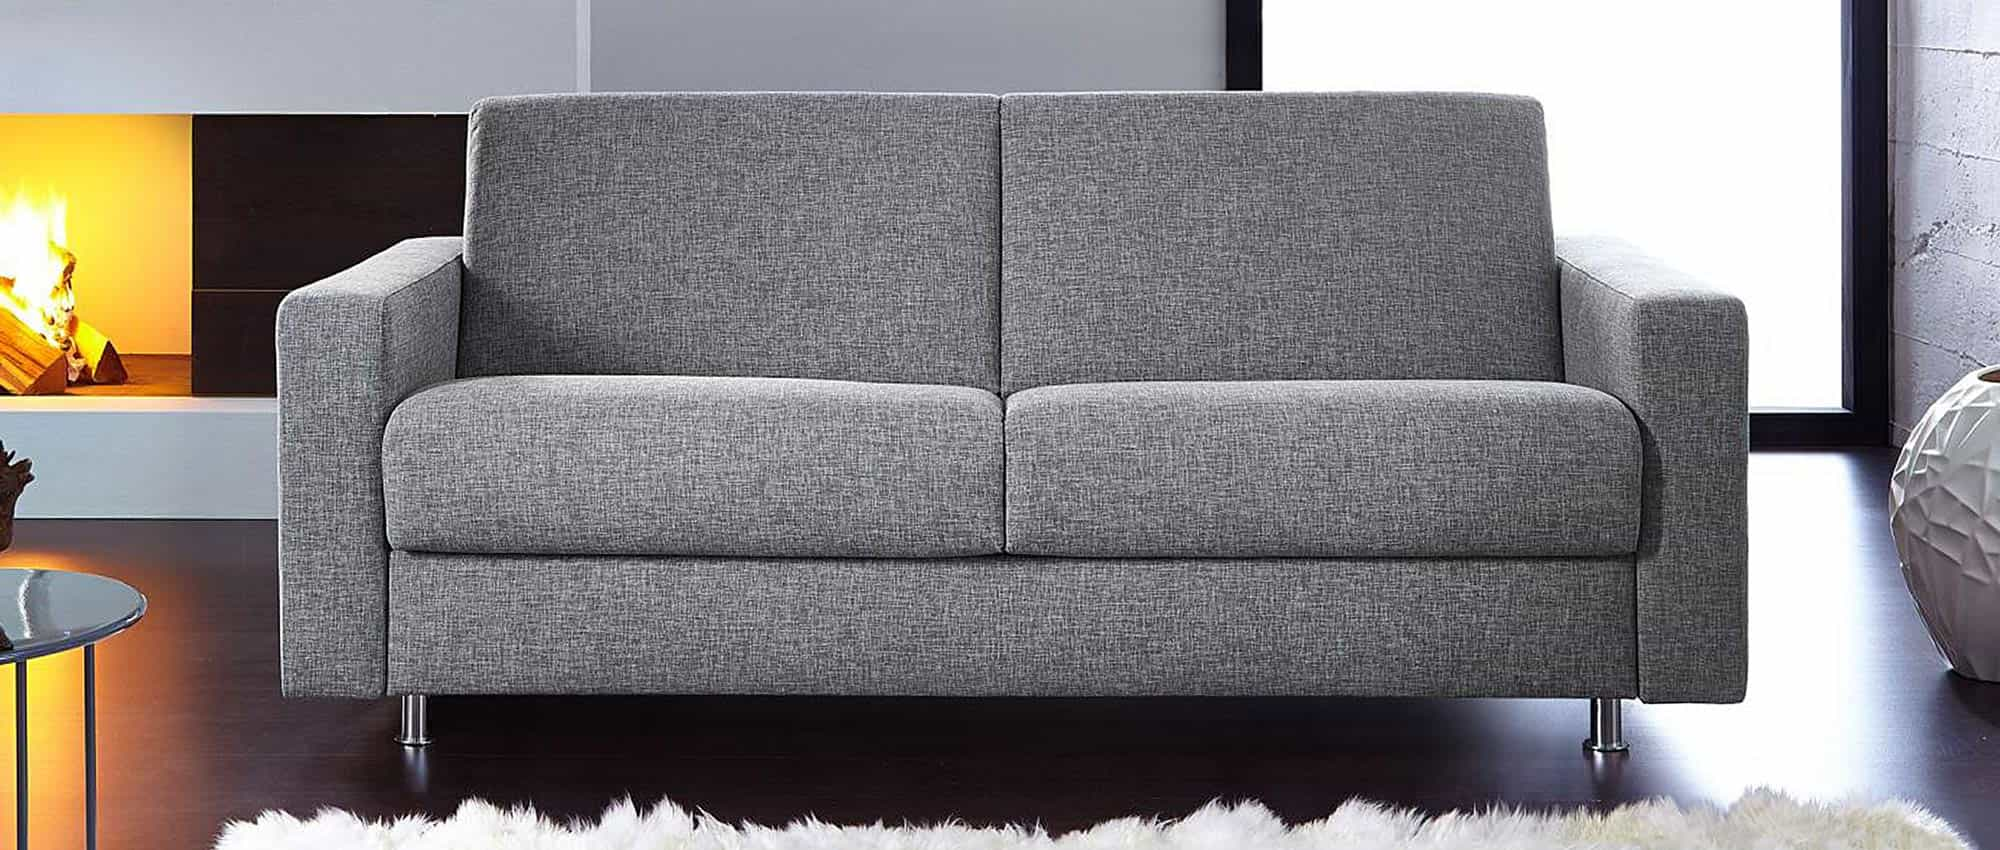 62 schlafsofa 180 cm breit 78 besten sofa bed schlafsofa bilder auf pinterest schlafsofa. Black Bedroom Furniture Sets. Home Design Ideas